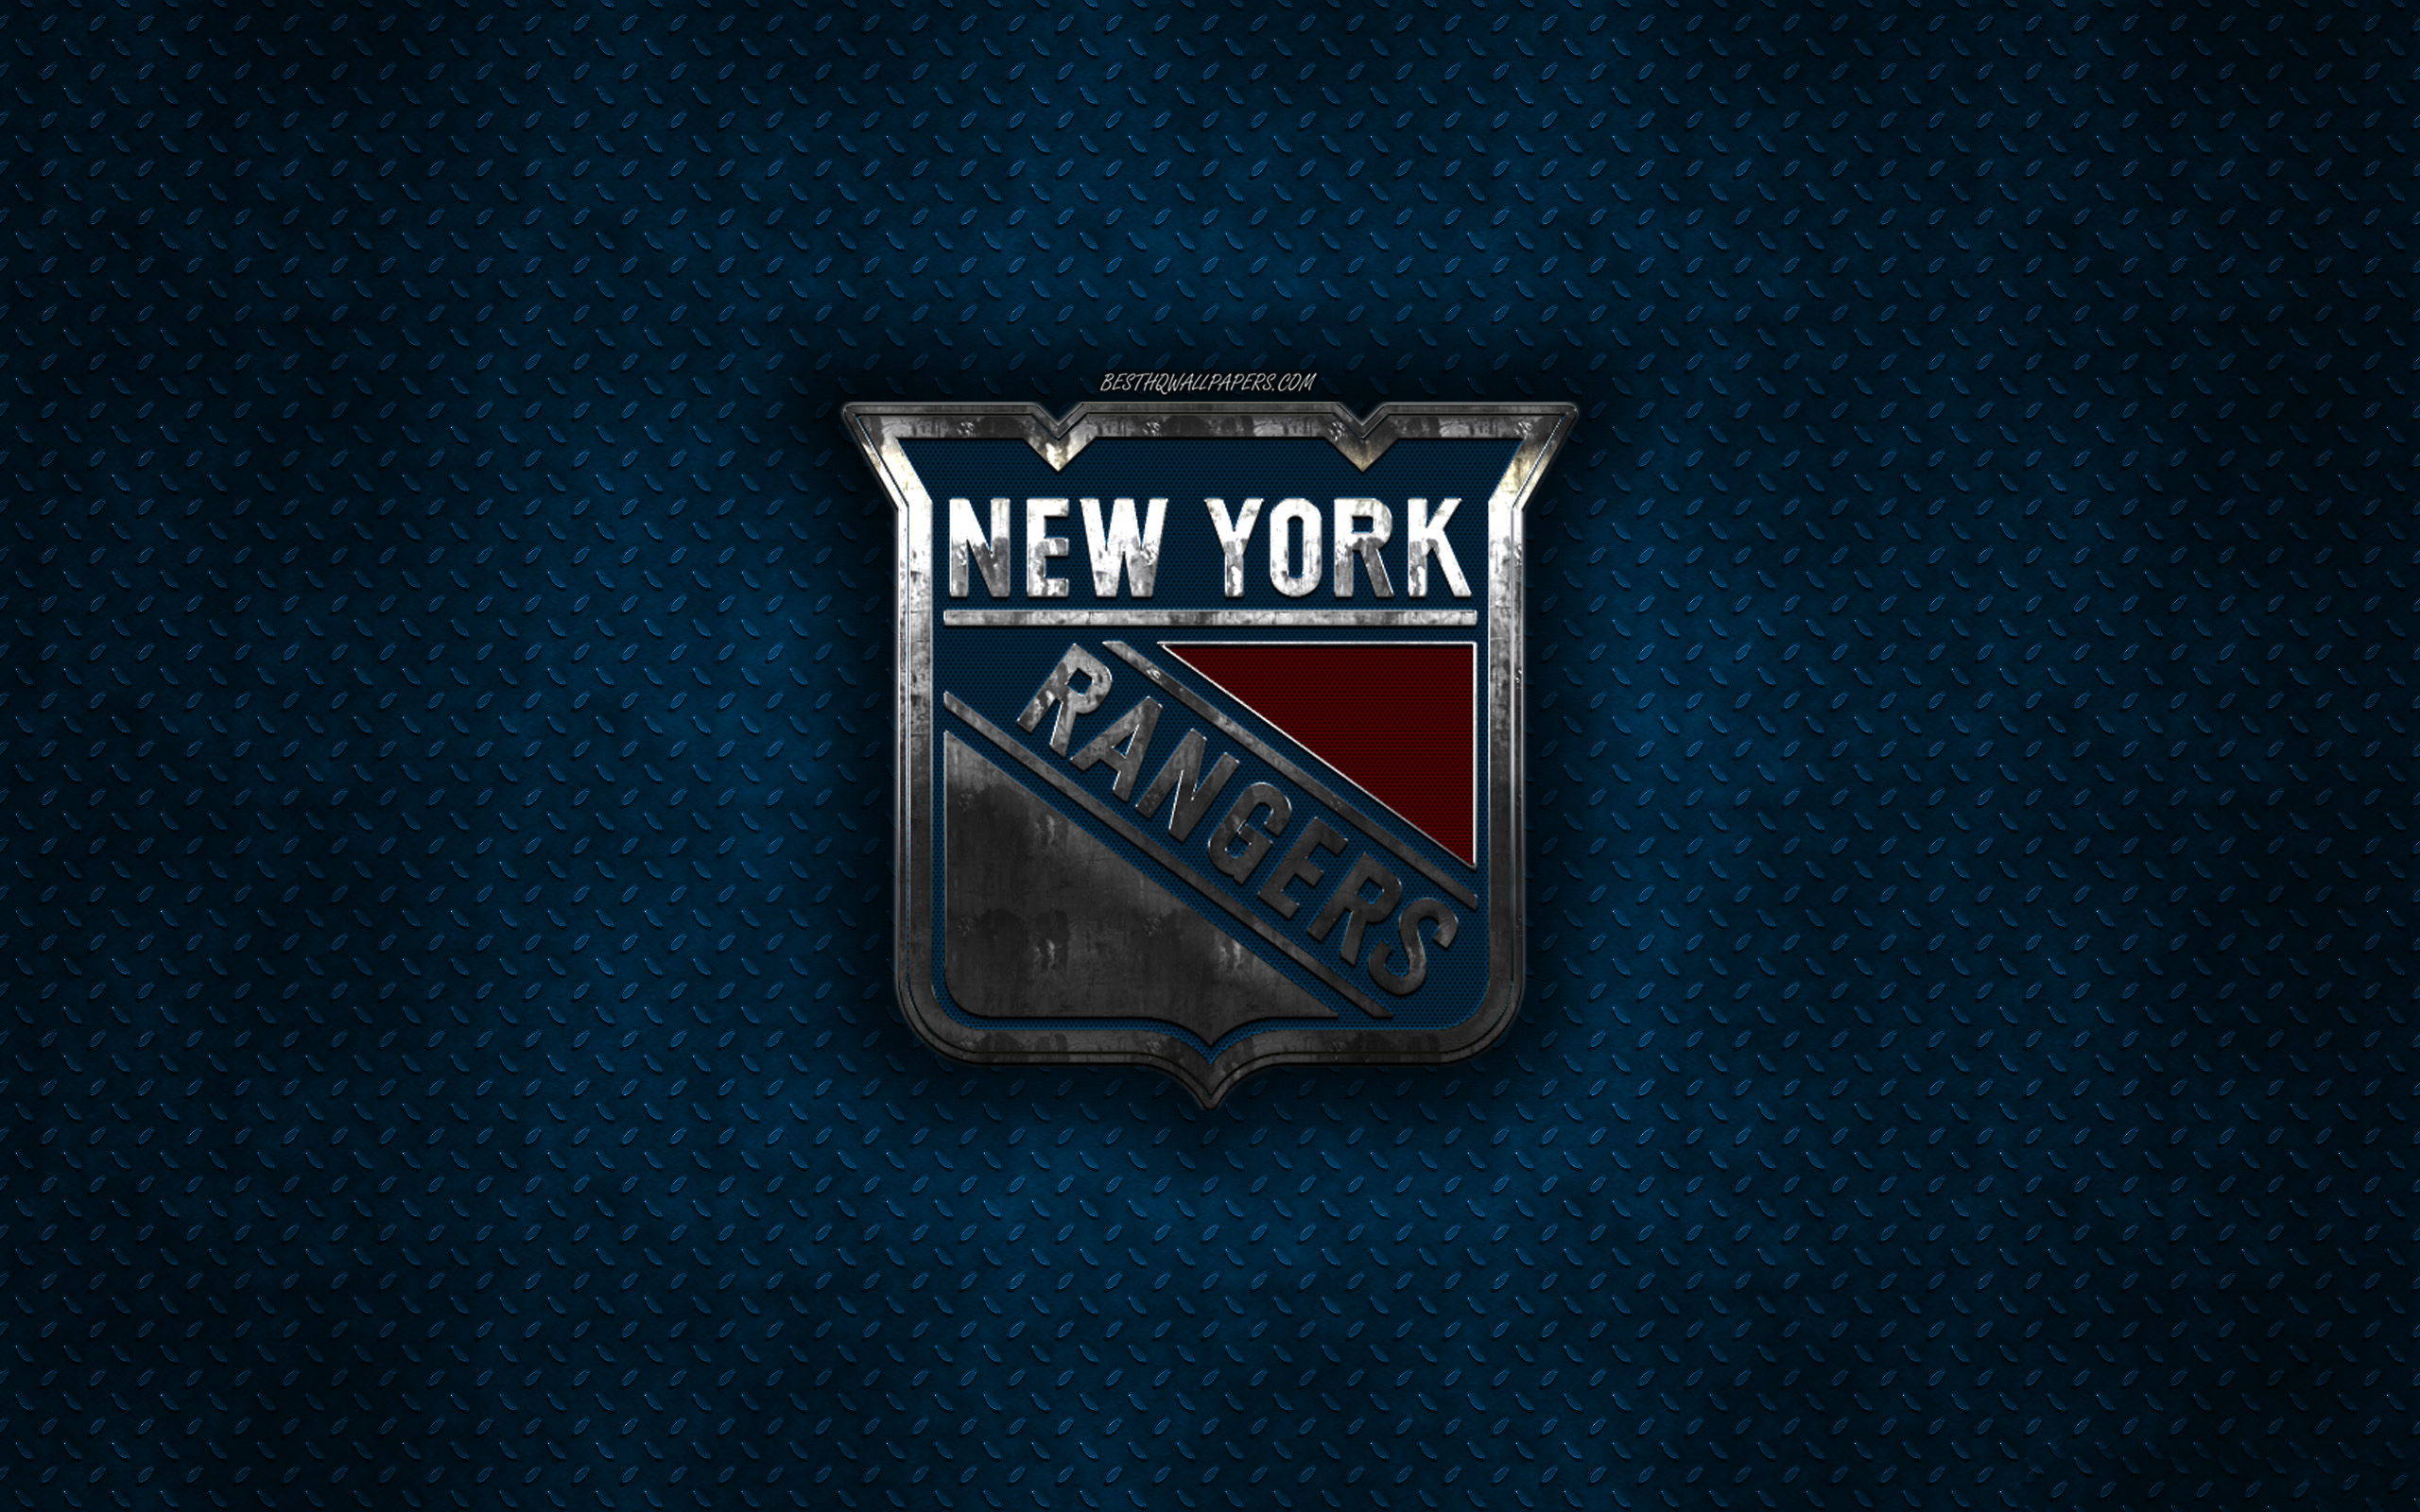 Download Wallpapers New York Rangers American Hockey Club Blue Metal Texture Metal Logo Emblem Nhl New York Usa National Hockey League Creative Art Hockey For Desktop With Resolution 2560x1600 High Quality Hd